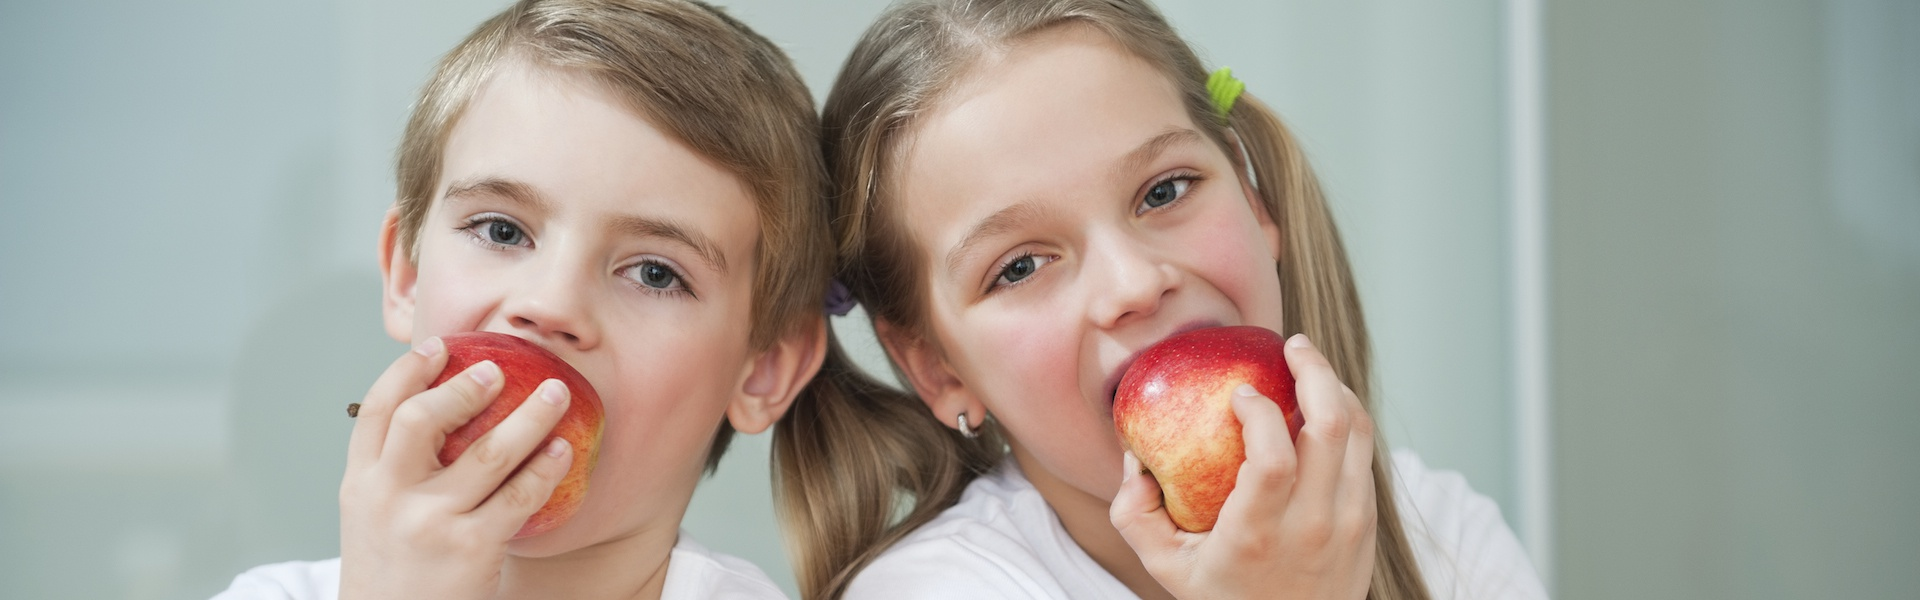 Photo of children who eat apples.